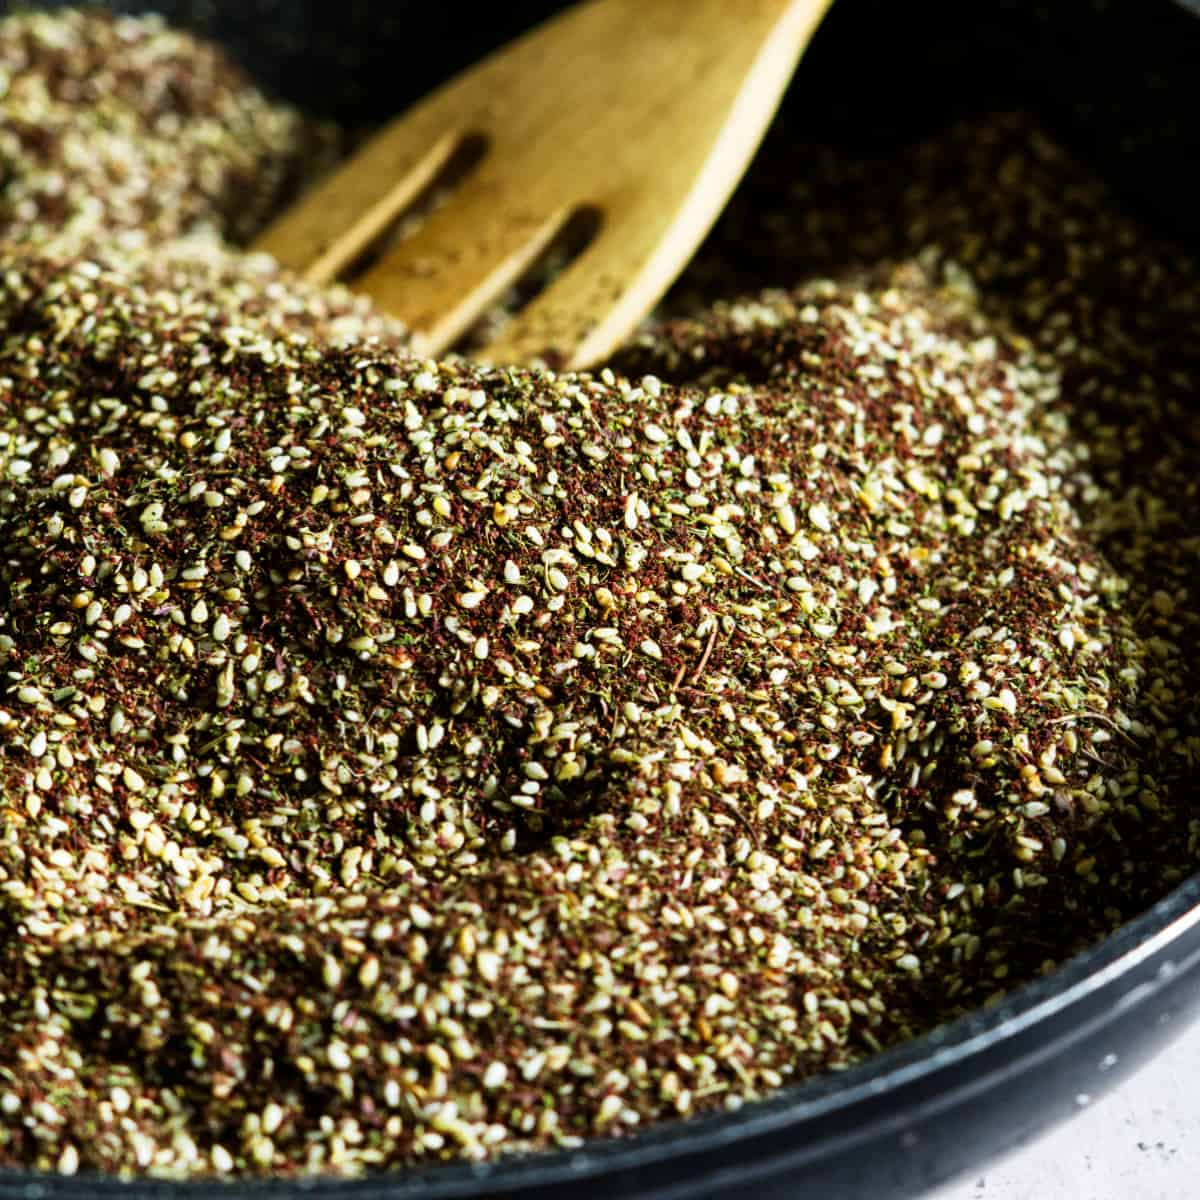 zaatar seasoning in a pan